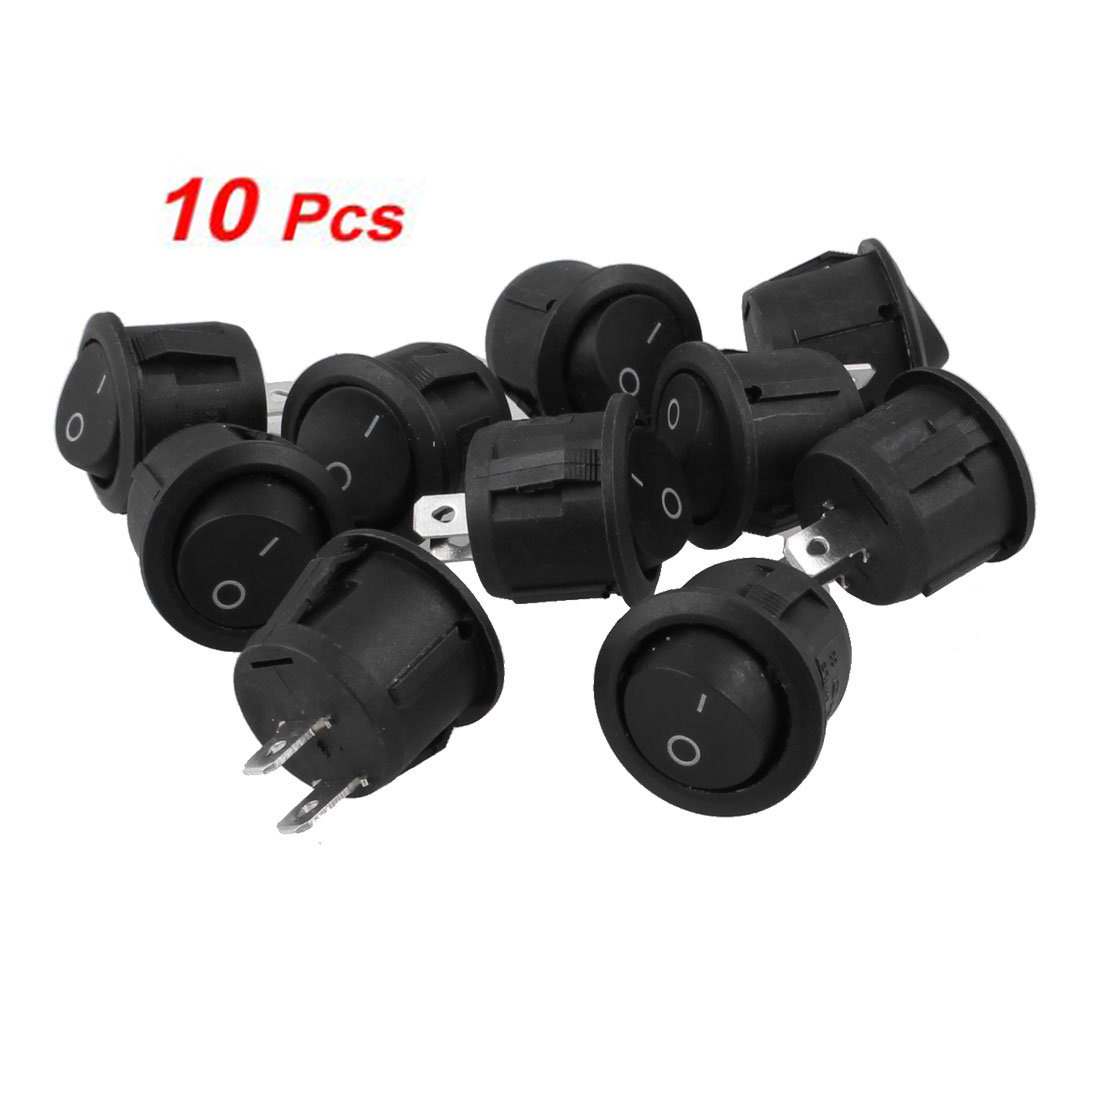 Promotion! 10Pcs AC 6A 10A 250V On Off Snap in SPST Round Boat Rocker Switch Black promotion 5 pcs x red light illuminated double spst on off snap in boat rocker switch 6 pin